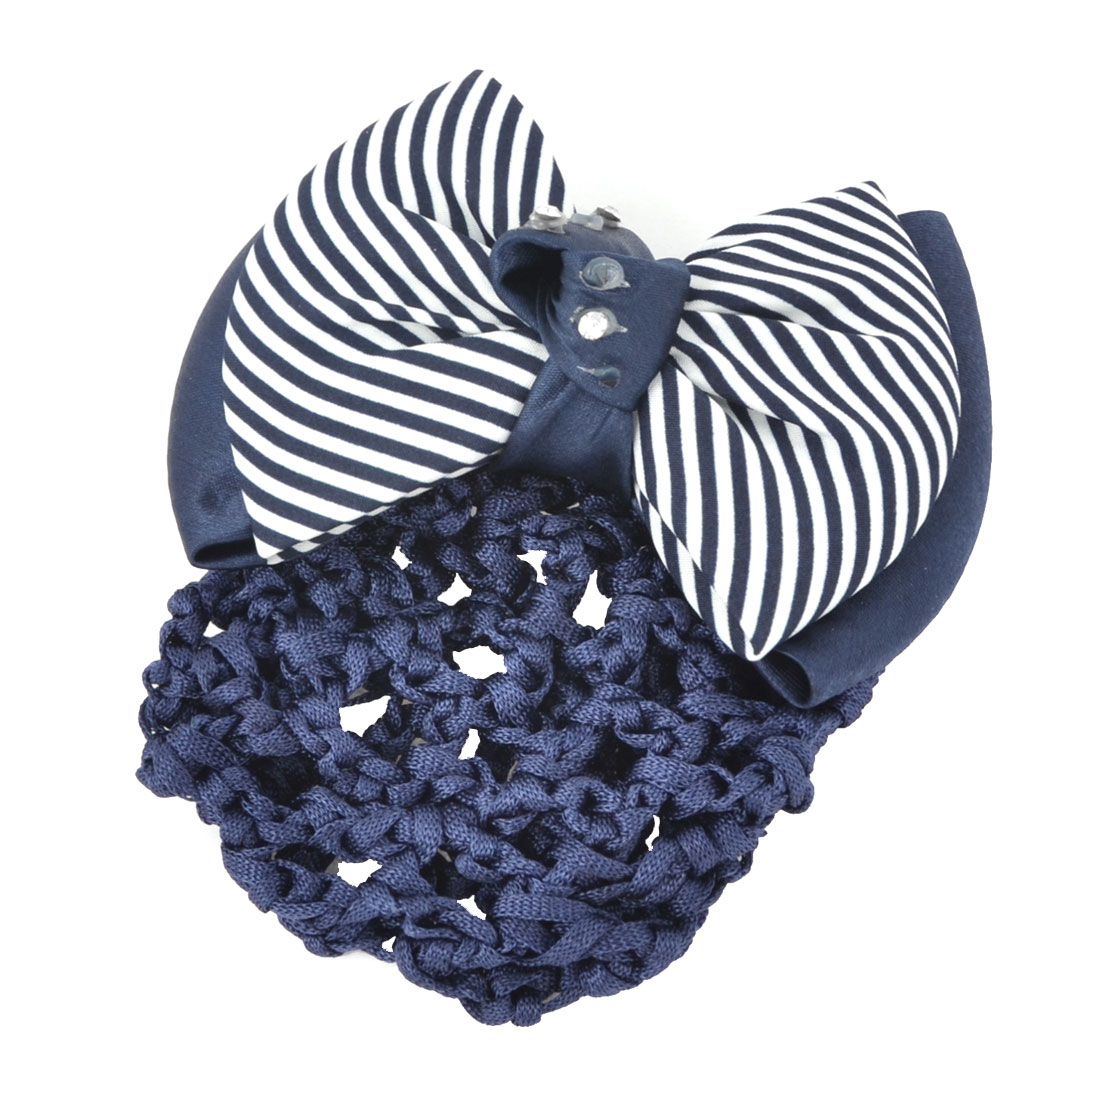 Blue White Glitter Rhinestones Inlaid Striped Polyester Bowknot Decor Snood Net Barrette French Hair Clip Bun Cover for Ladies